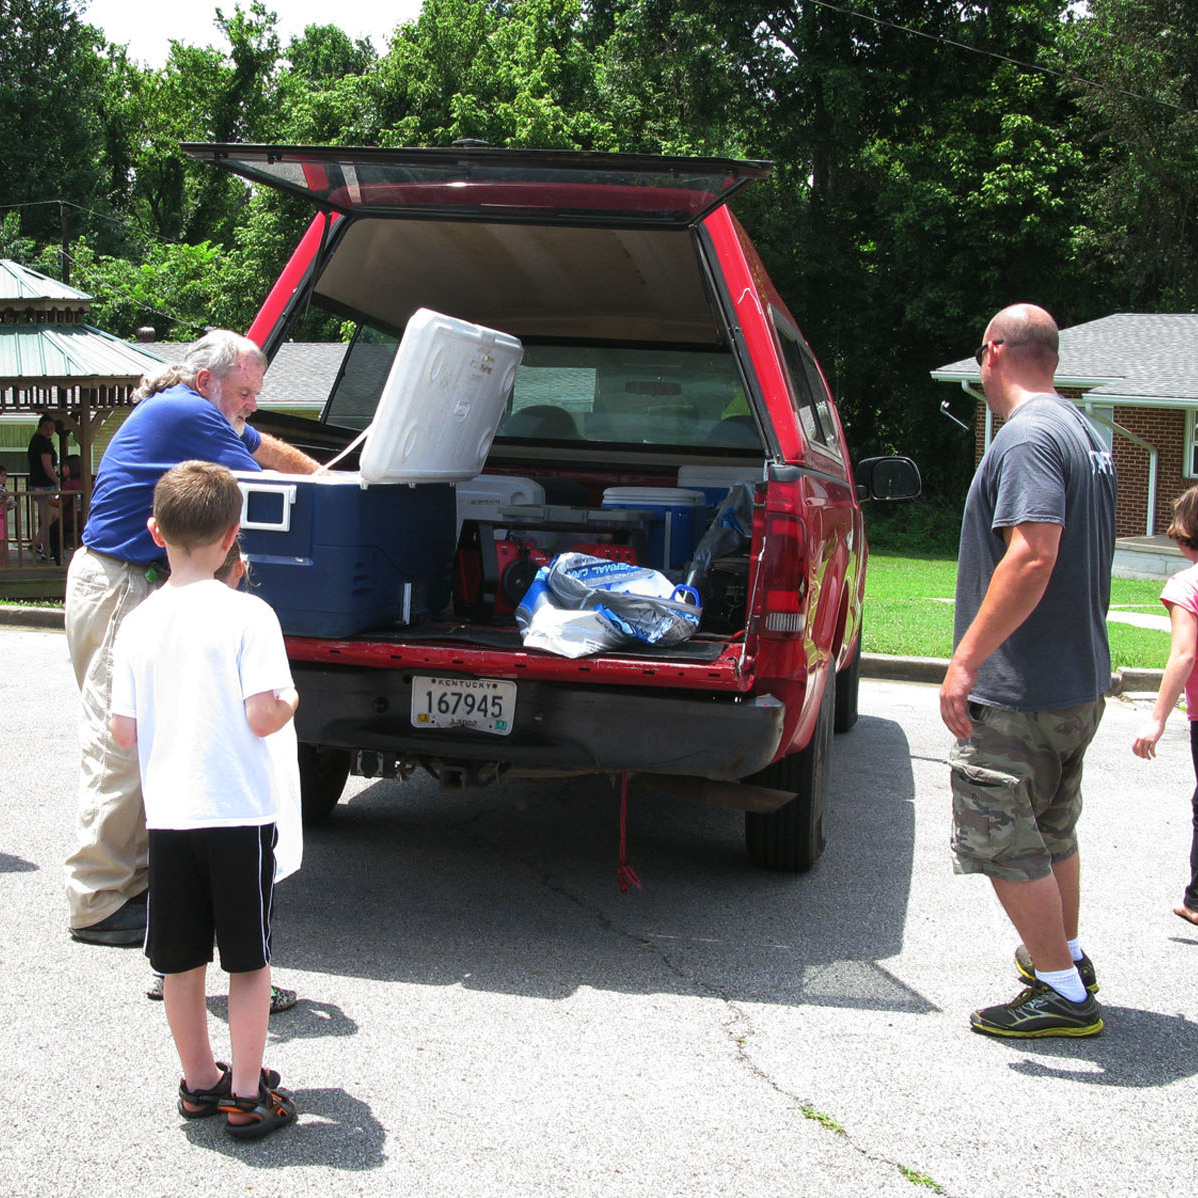 Volunteer Steve Boyd (left) distributes lunches to children from a YMCA truck with the help of YMCA employee Sean Summers (second from right) in Hopkins County, Ky.